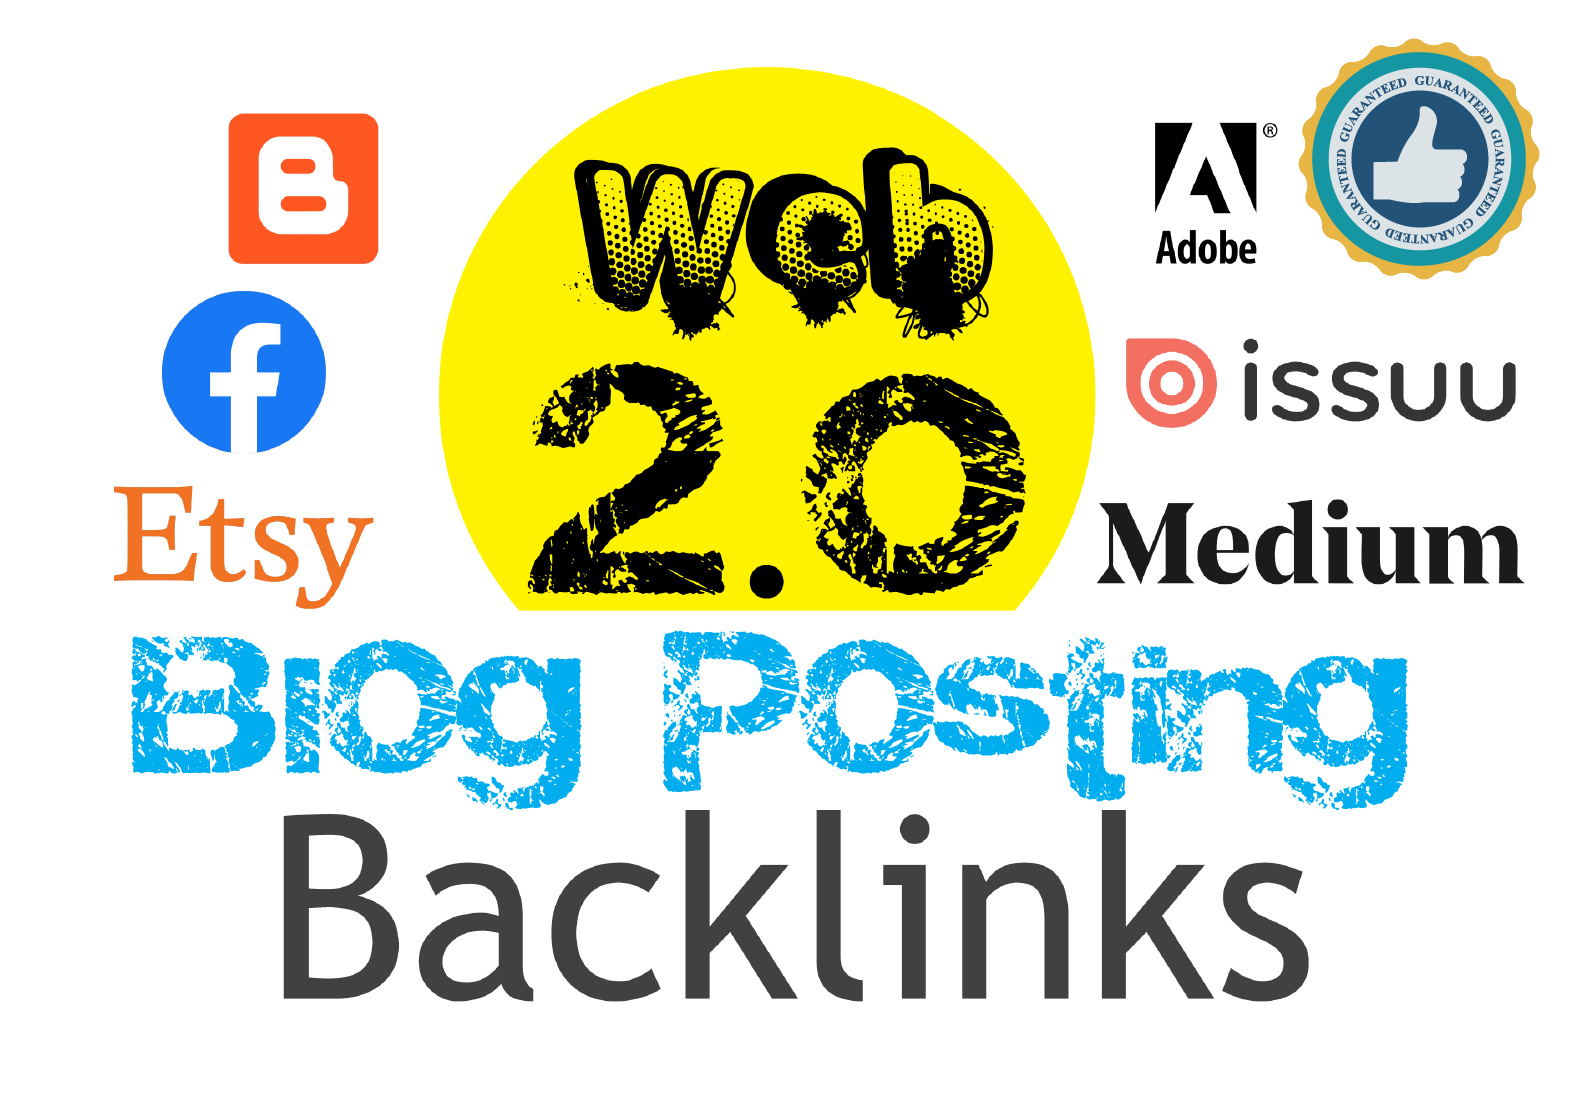 Manually Do 50 Web 2.0 Blogs Posting To Get Huge Boost in Search Engine